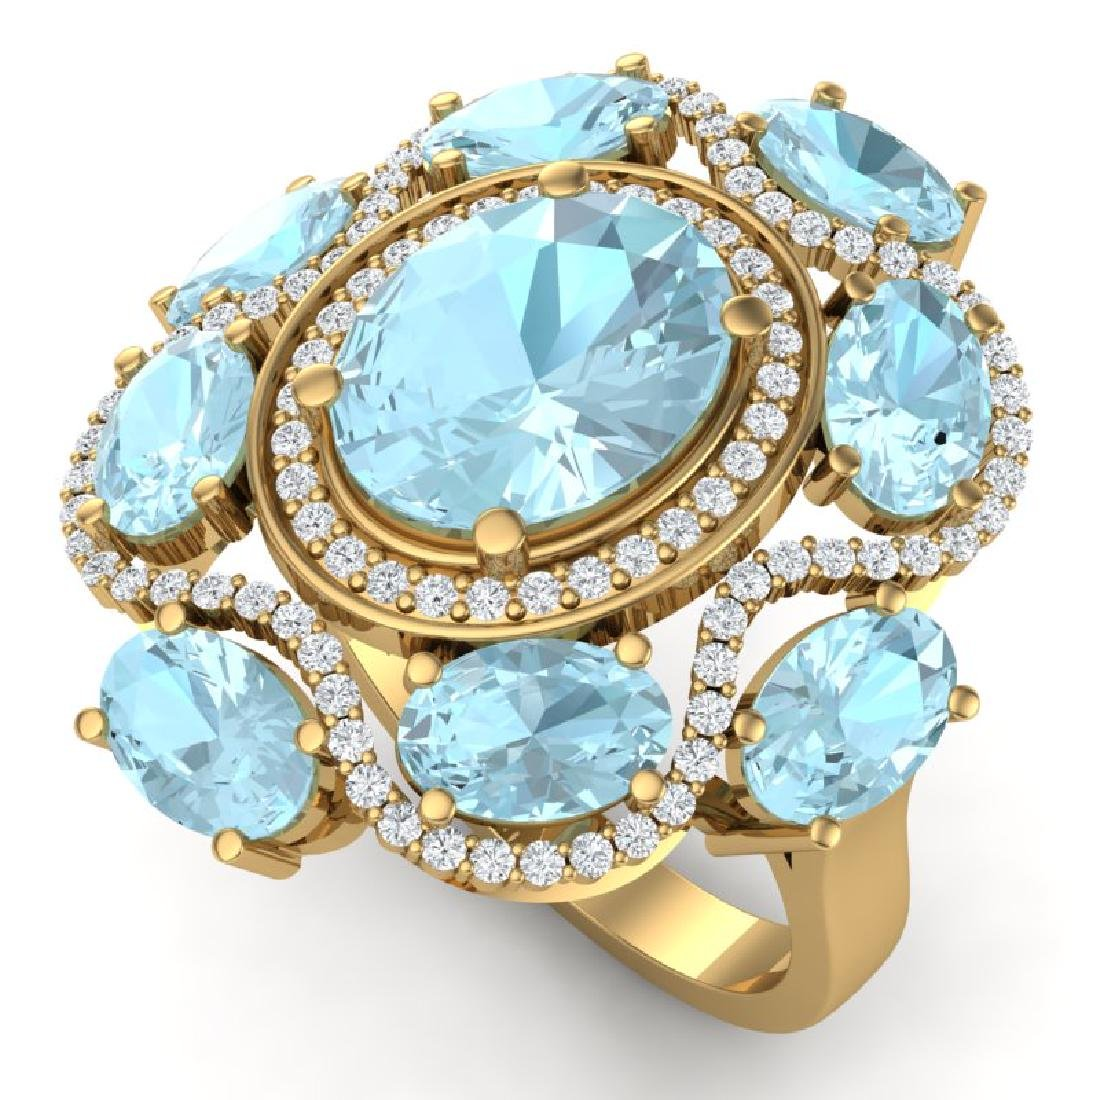 9.26 CTW Royalty Sky Topaz & VS Diamond Ring 18K Yellow